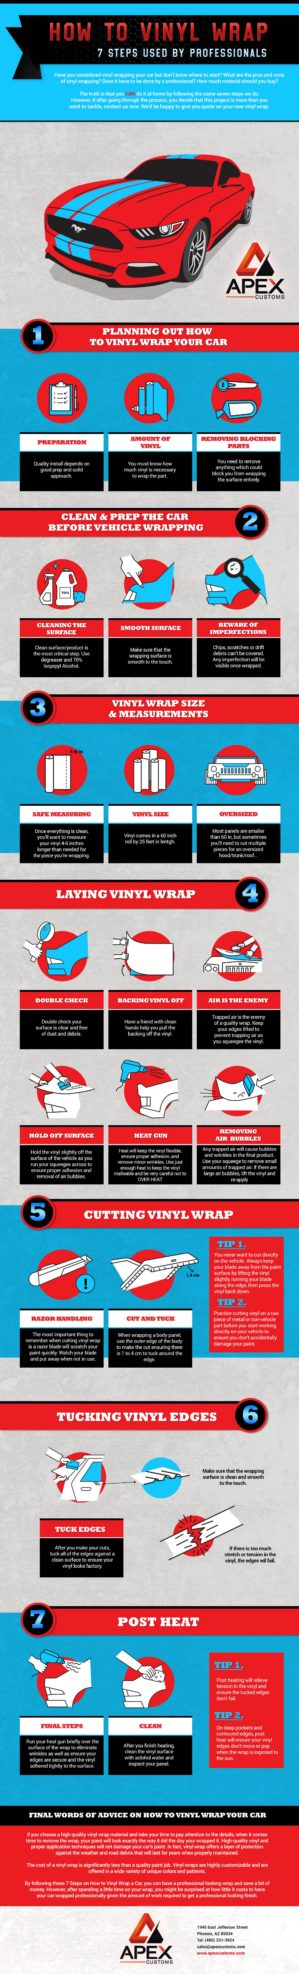 How To Vinyl Wrap, Steps From the Professionals Infographic